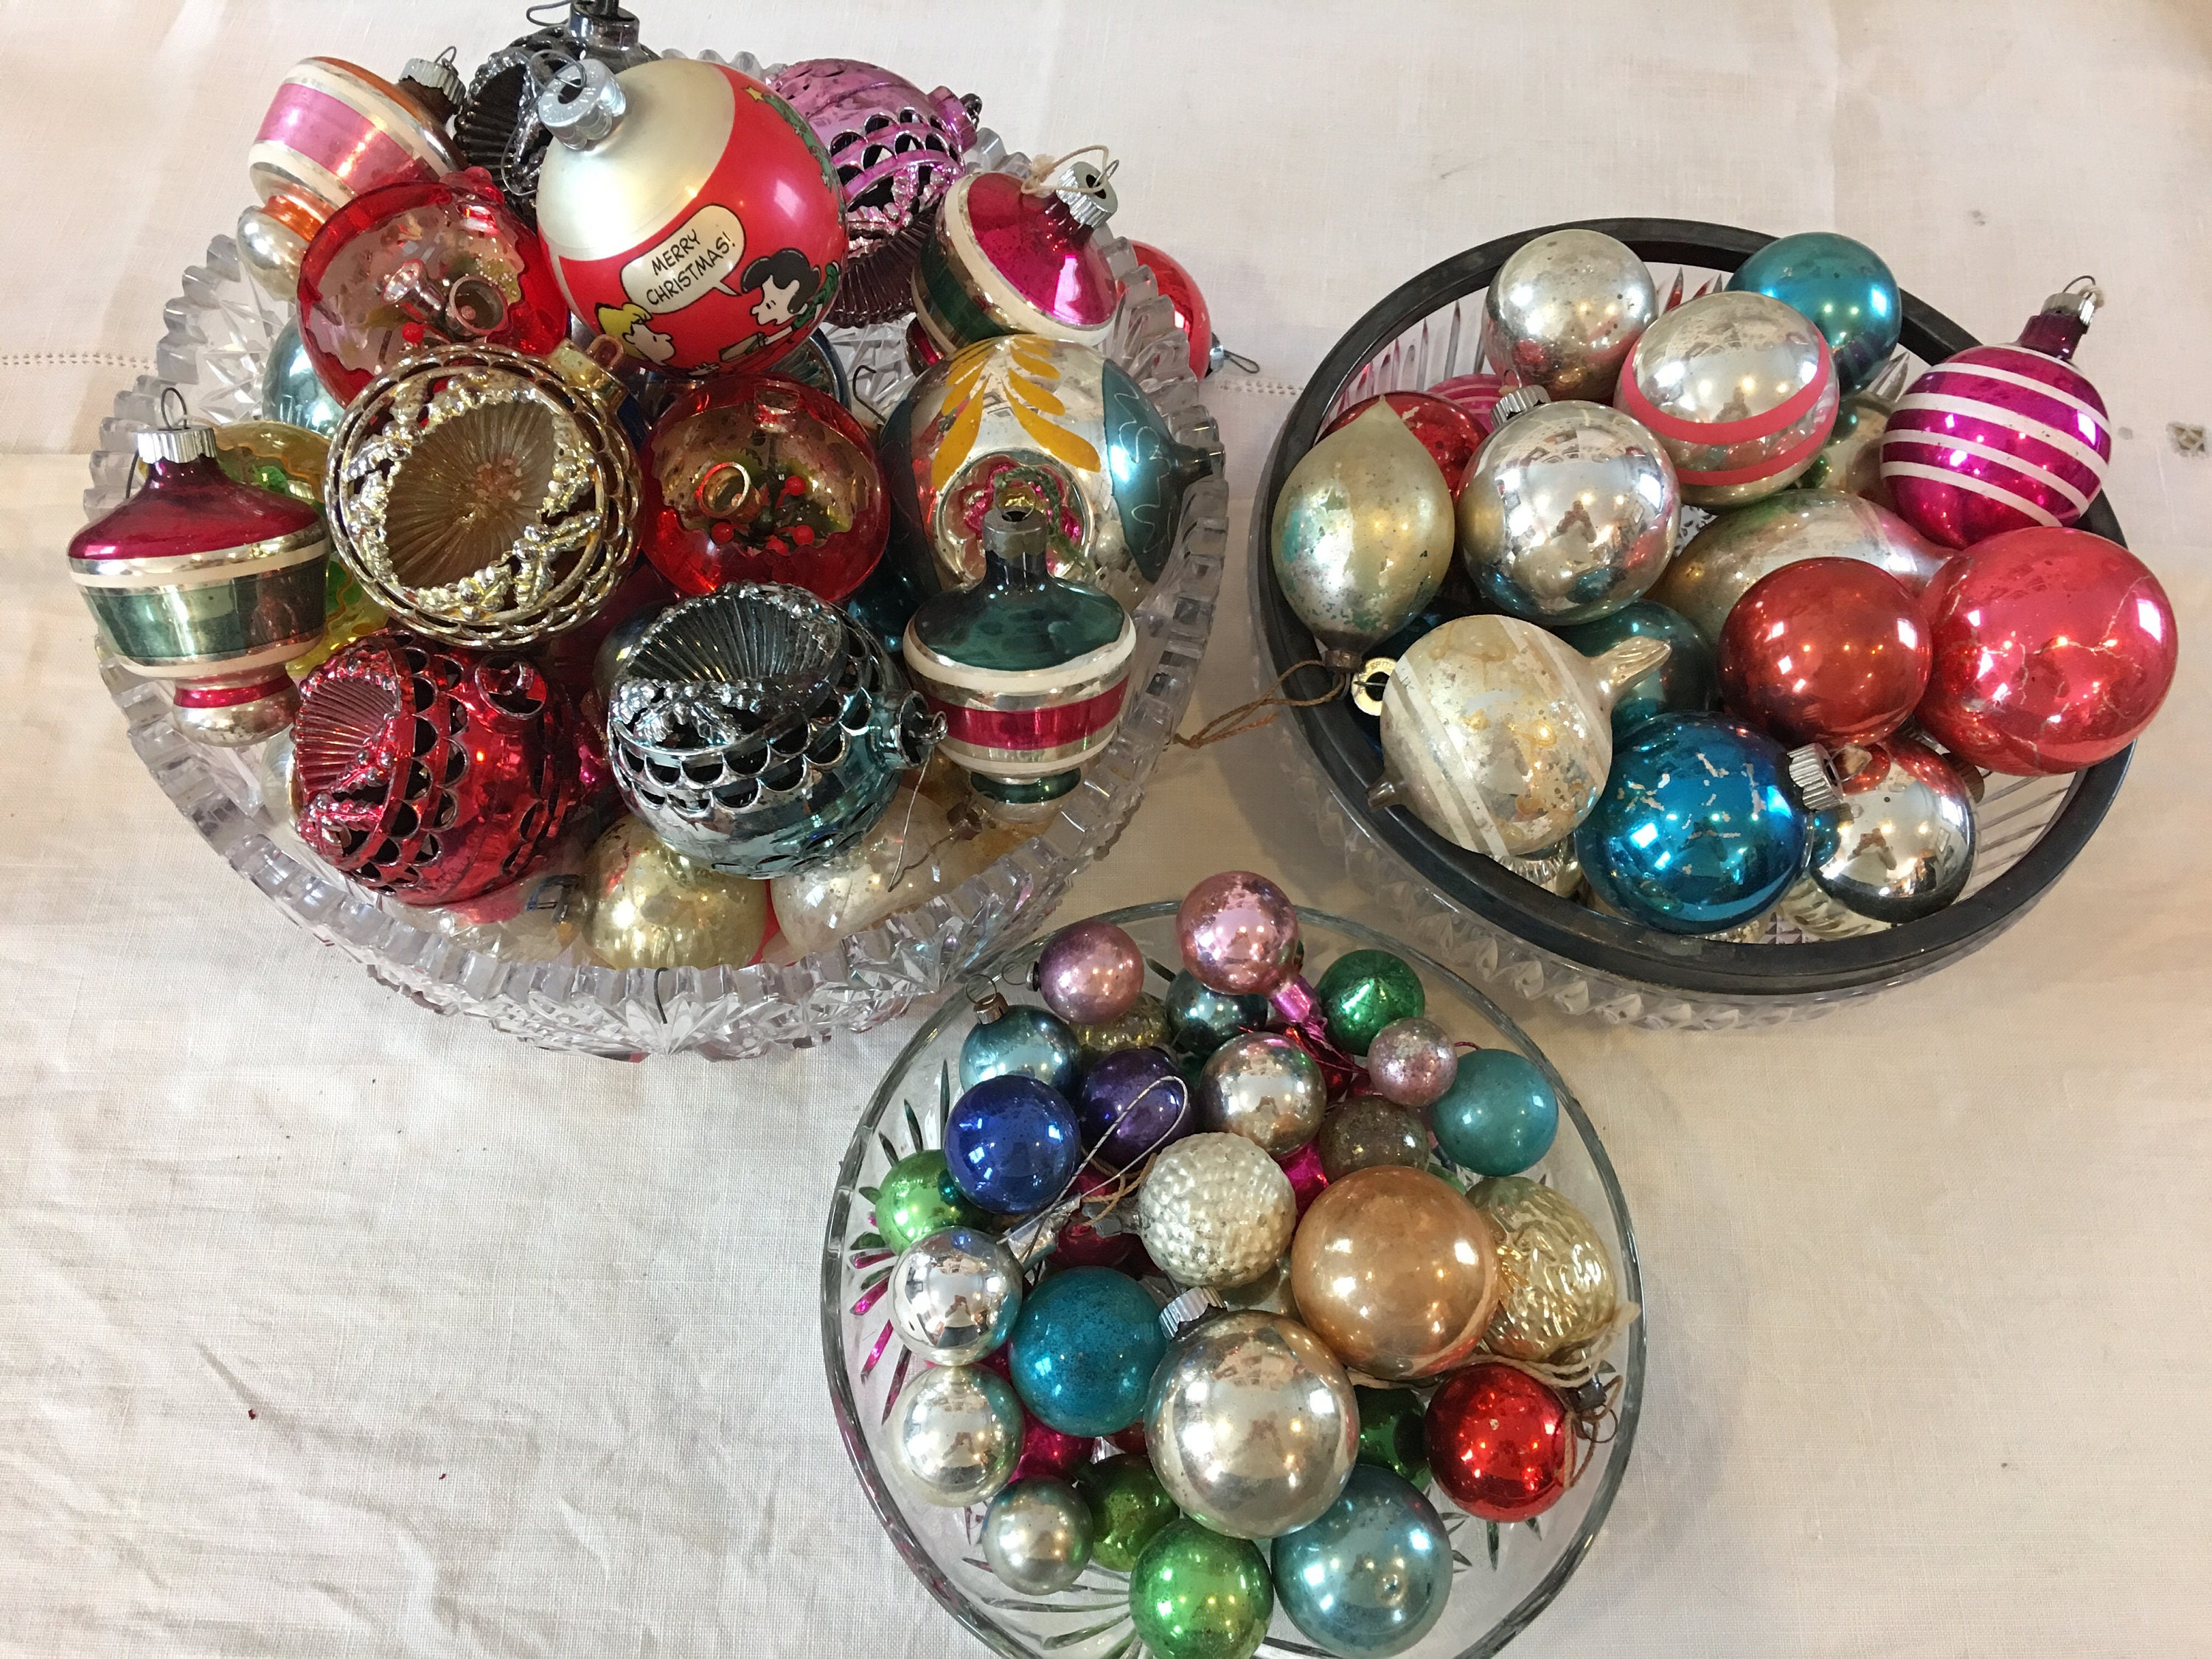 huge collection of mercury glass vintage plastic christmas tree ornaments 1950 mid century crackle glass bells 103 ornaments small med large - Large Plastic Christmas Decorations